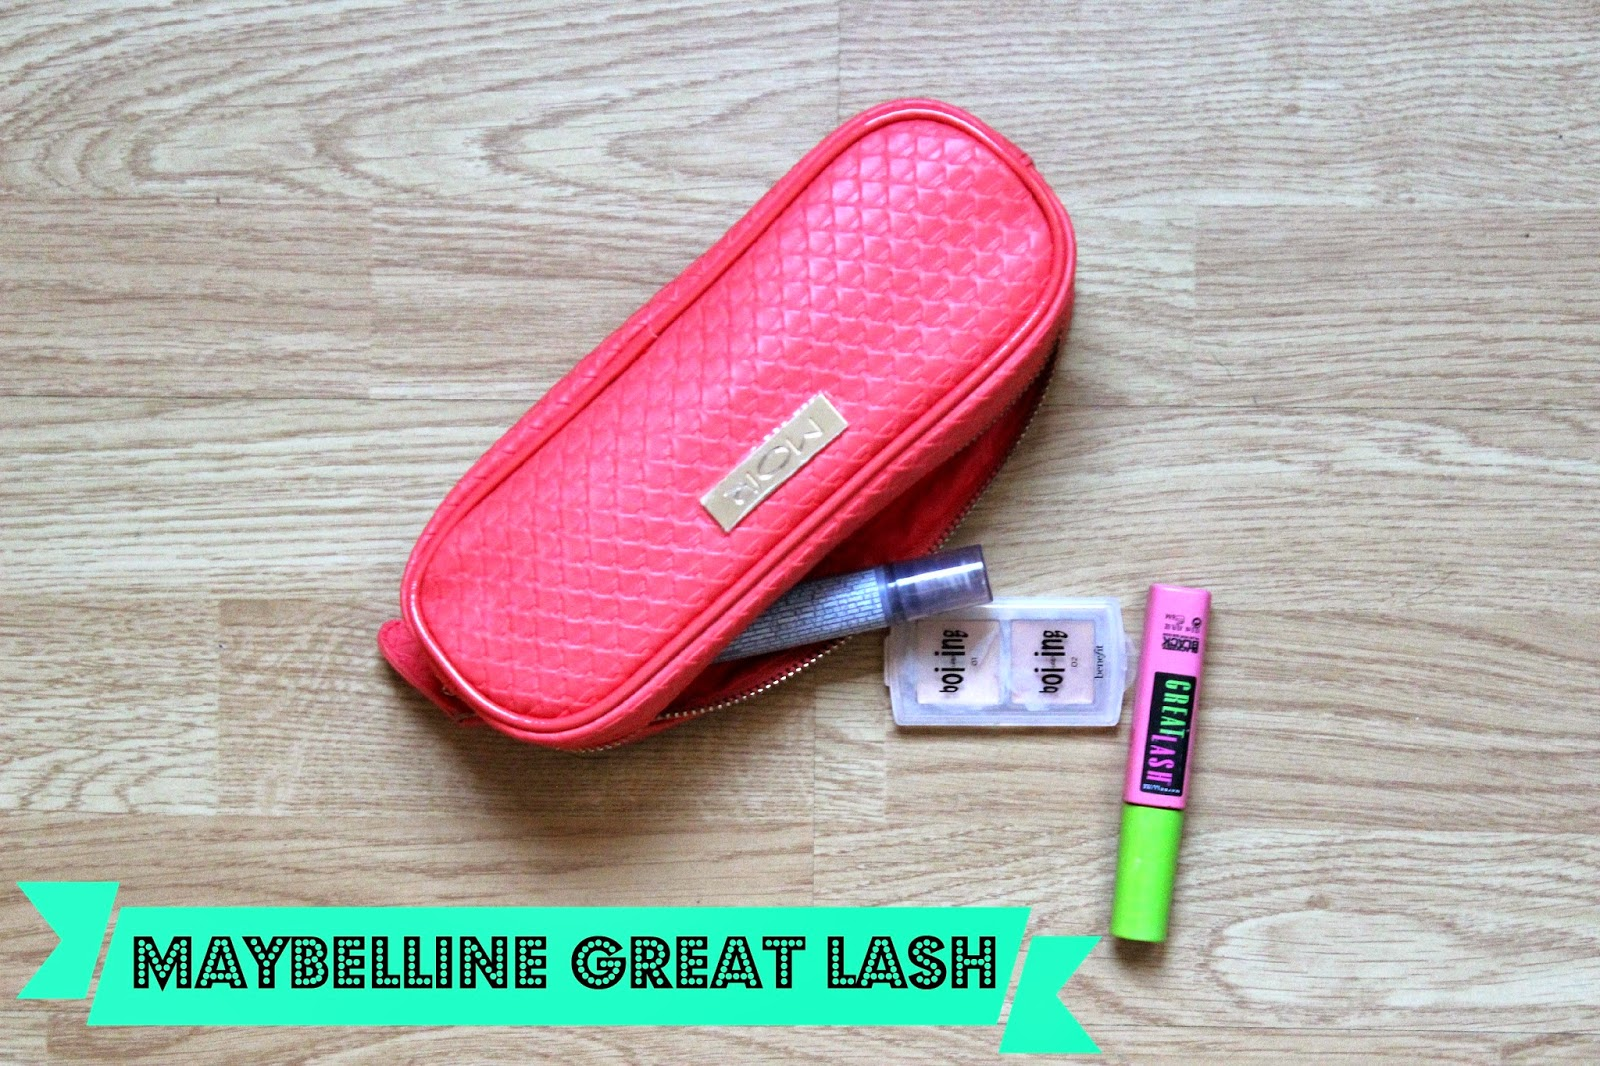 Review: Maybelline Great Lash Mascara